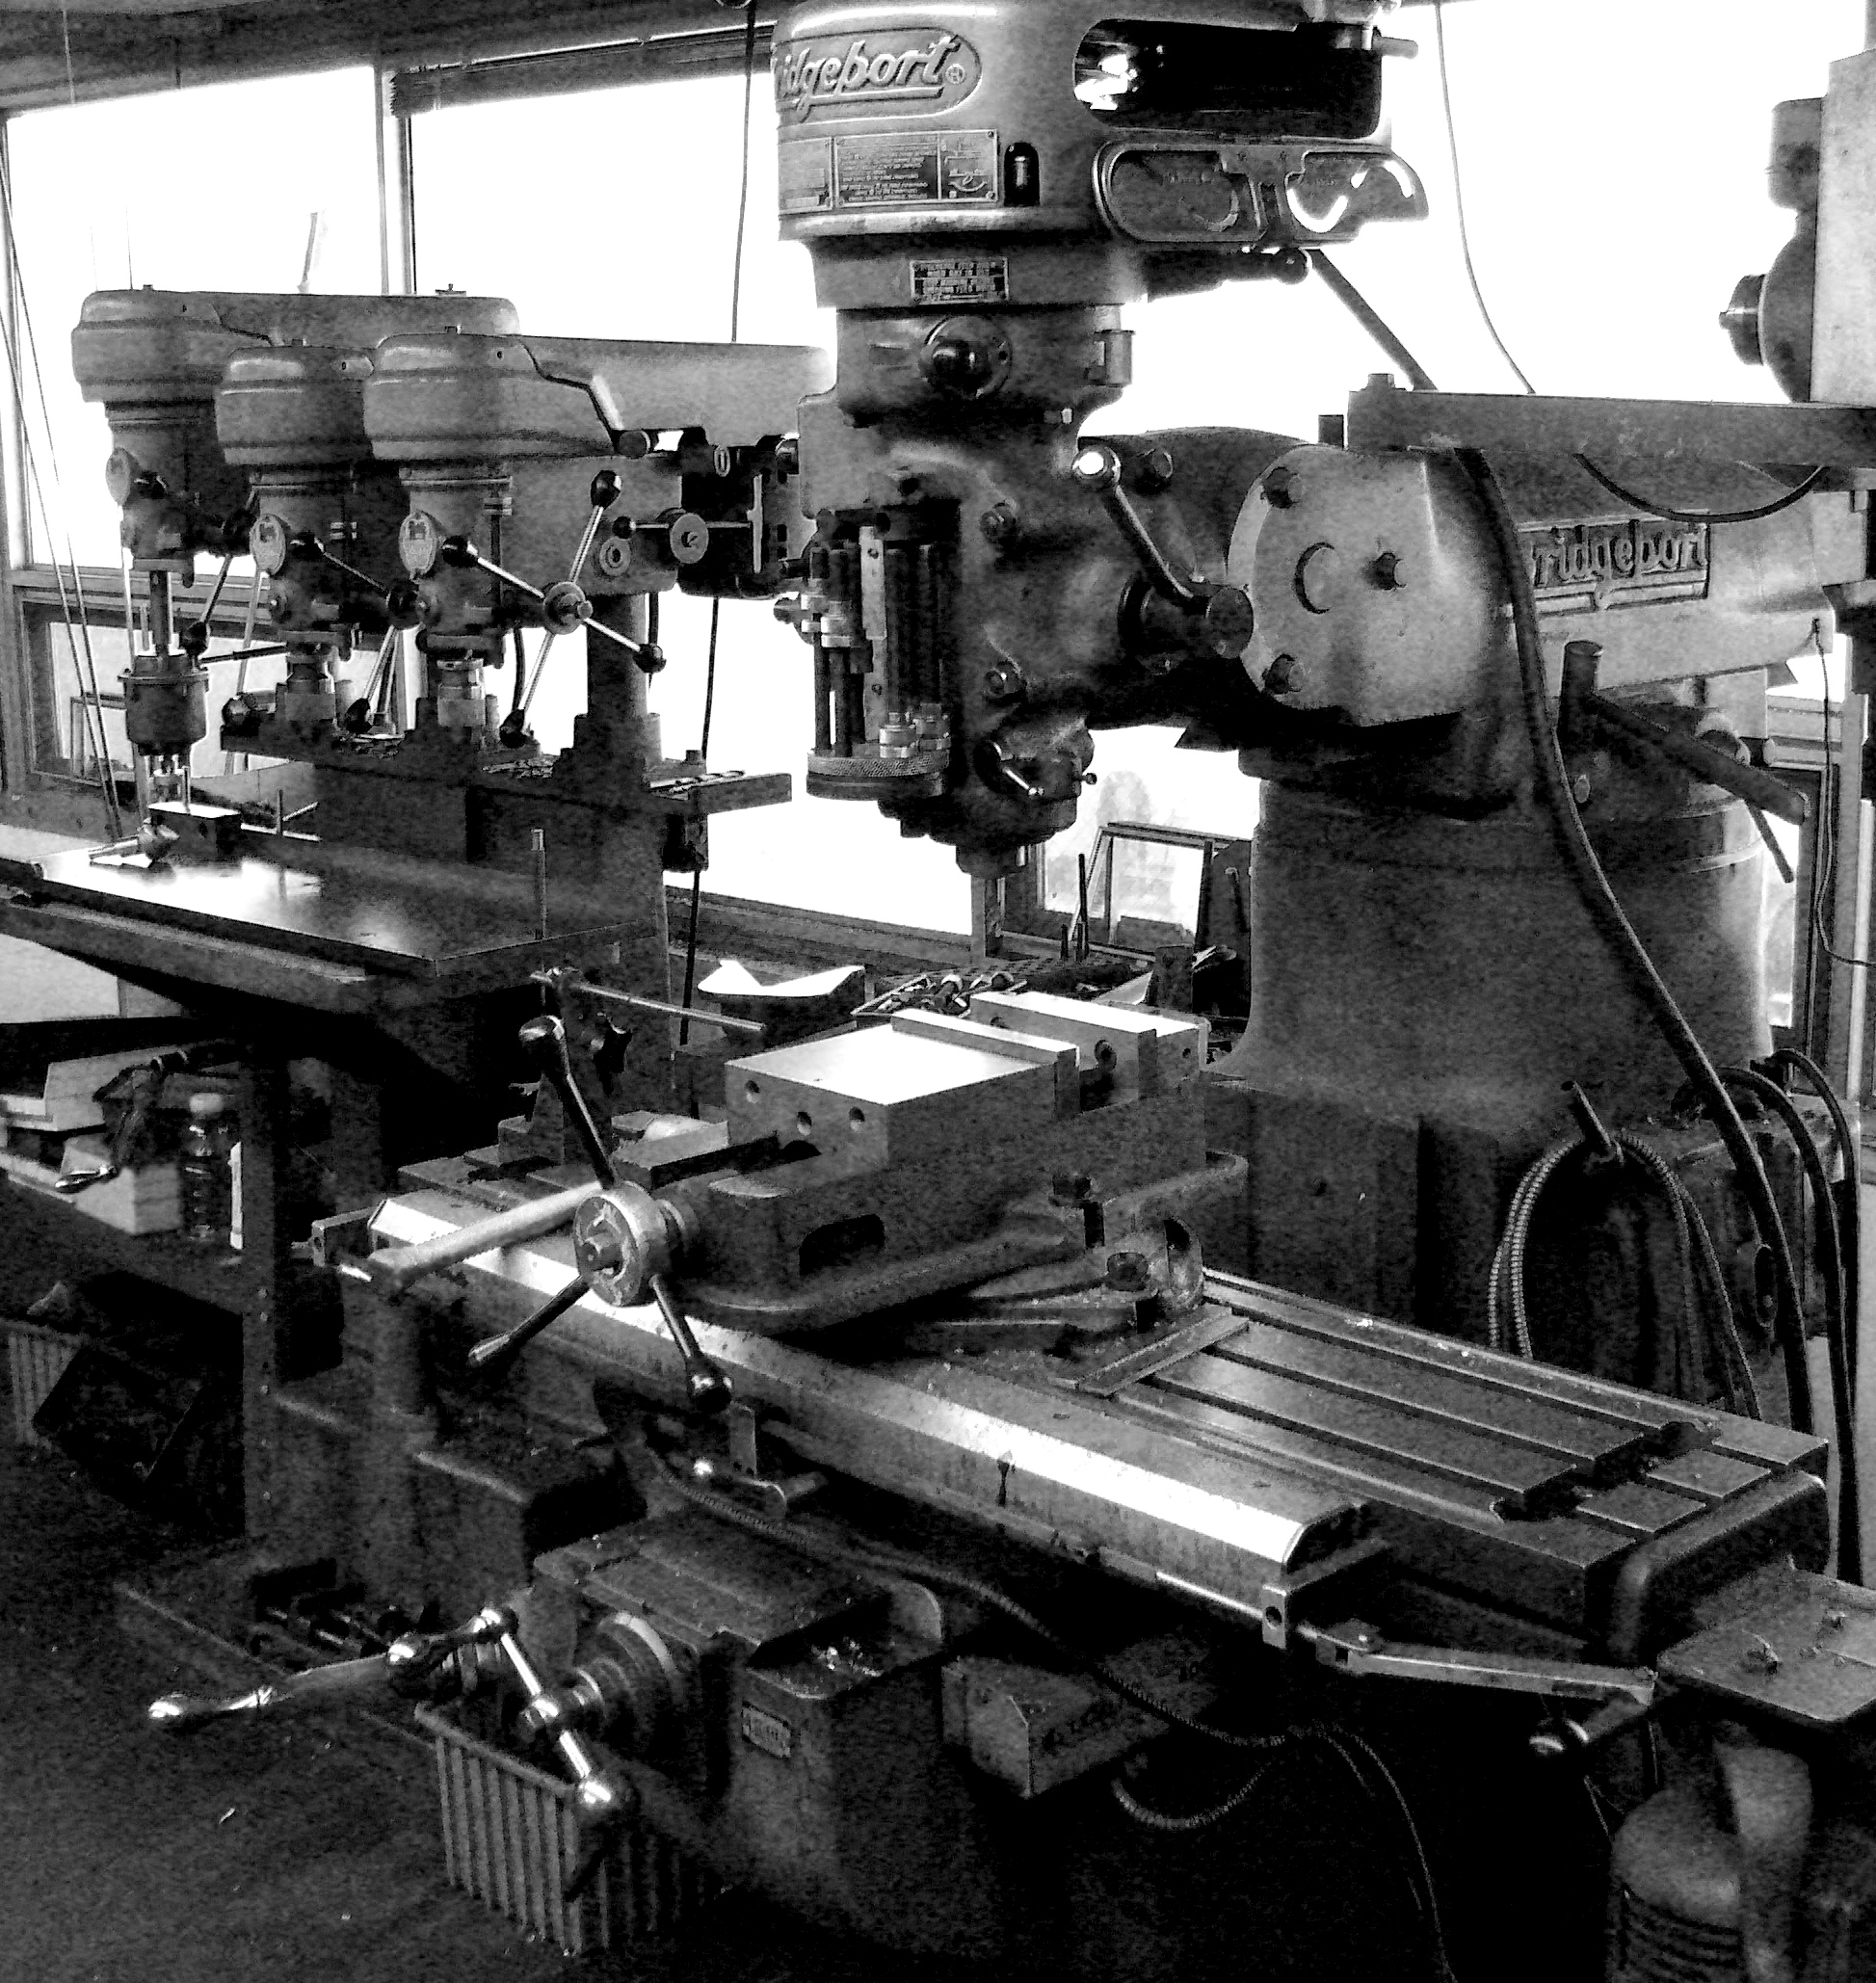 A black and white photo of a bridgeport milling machine.